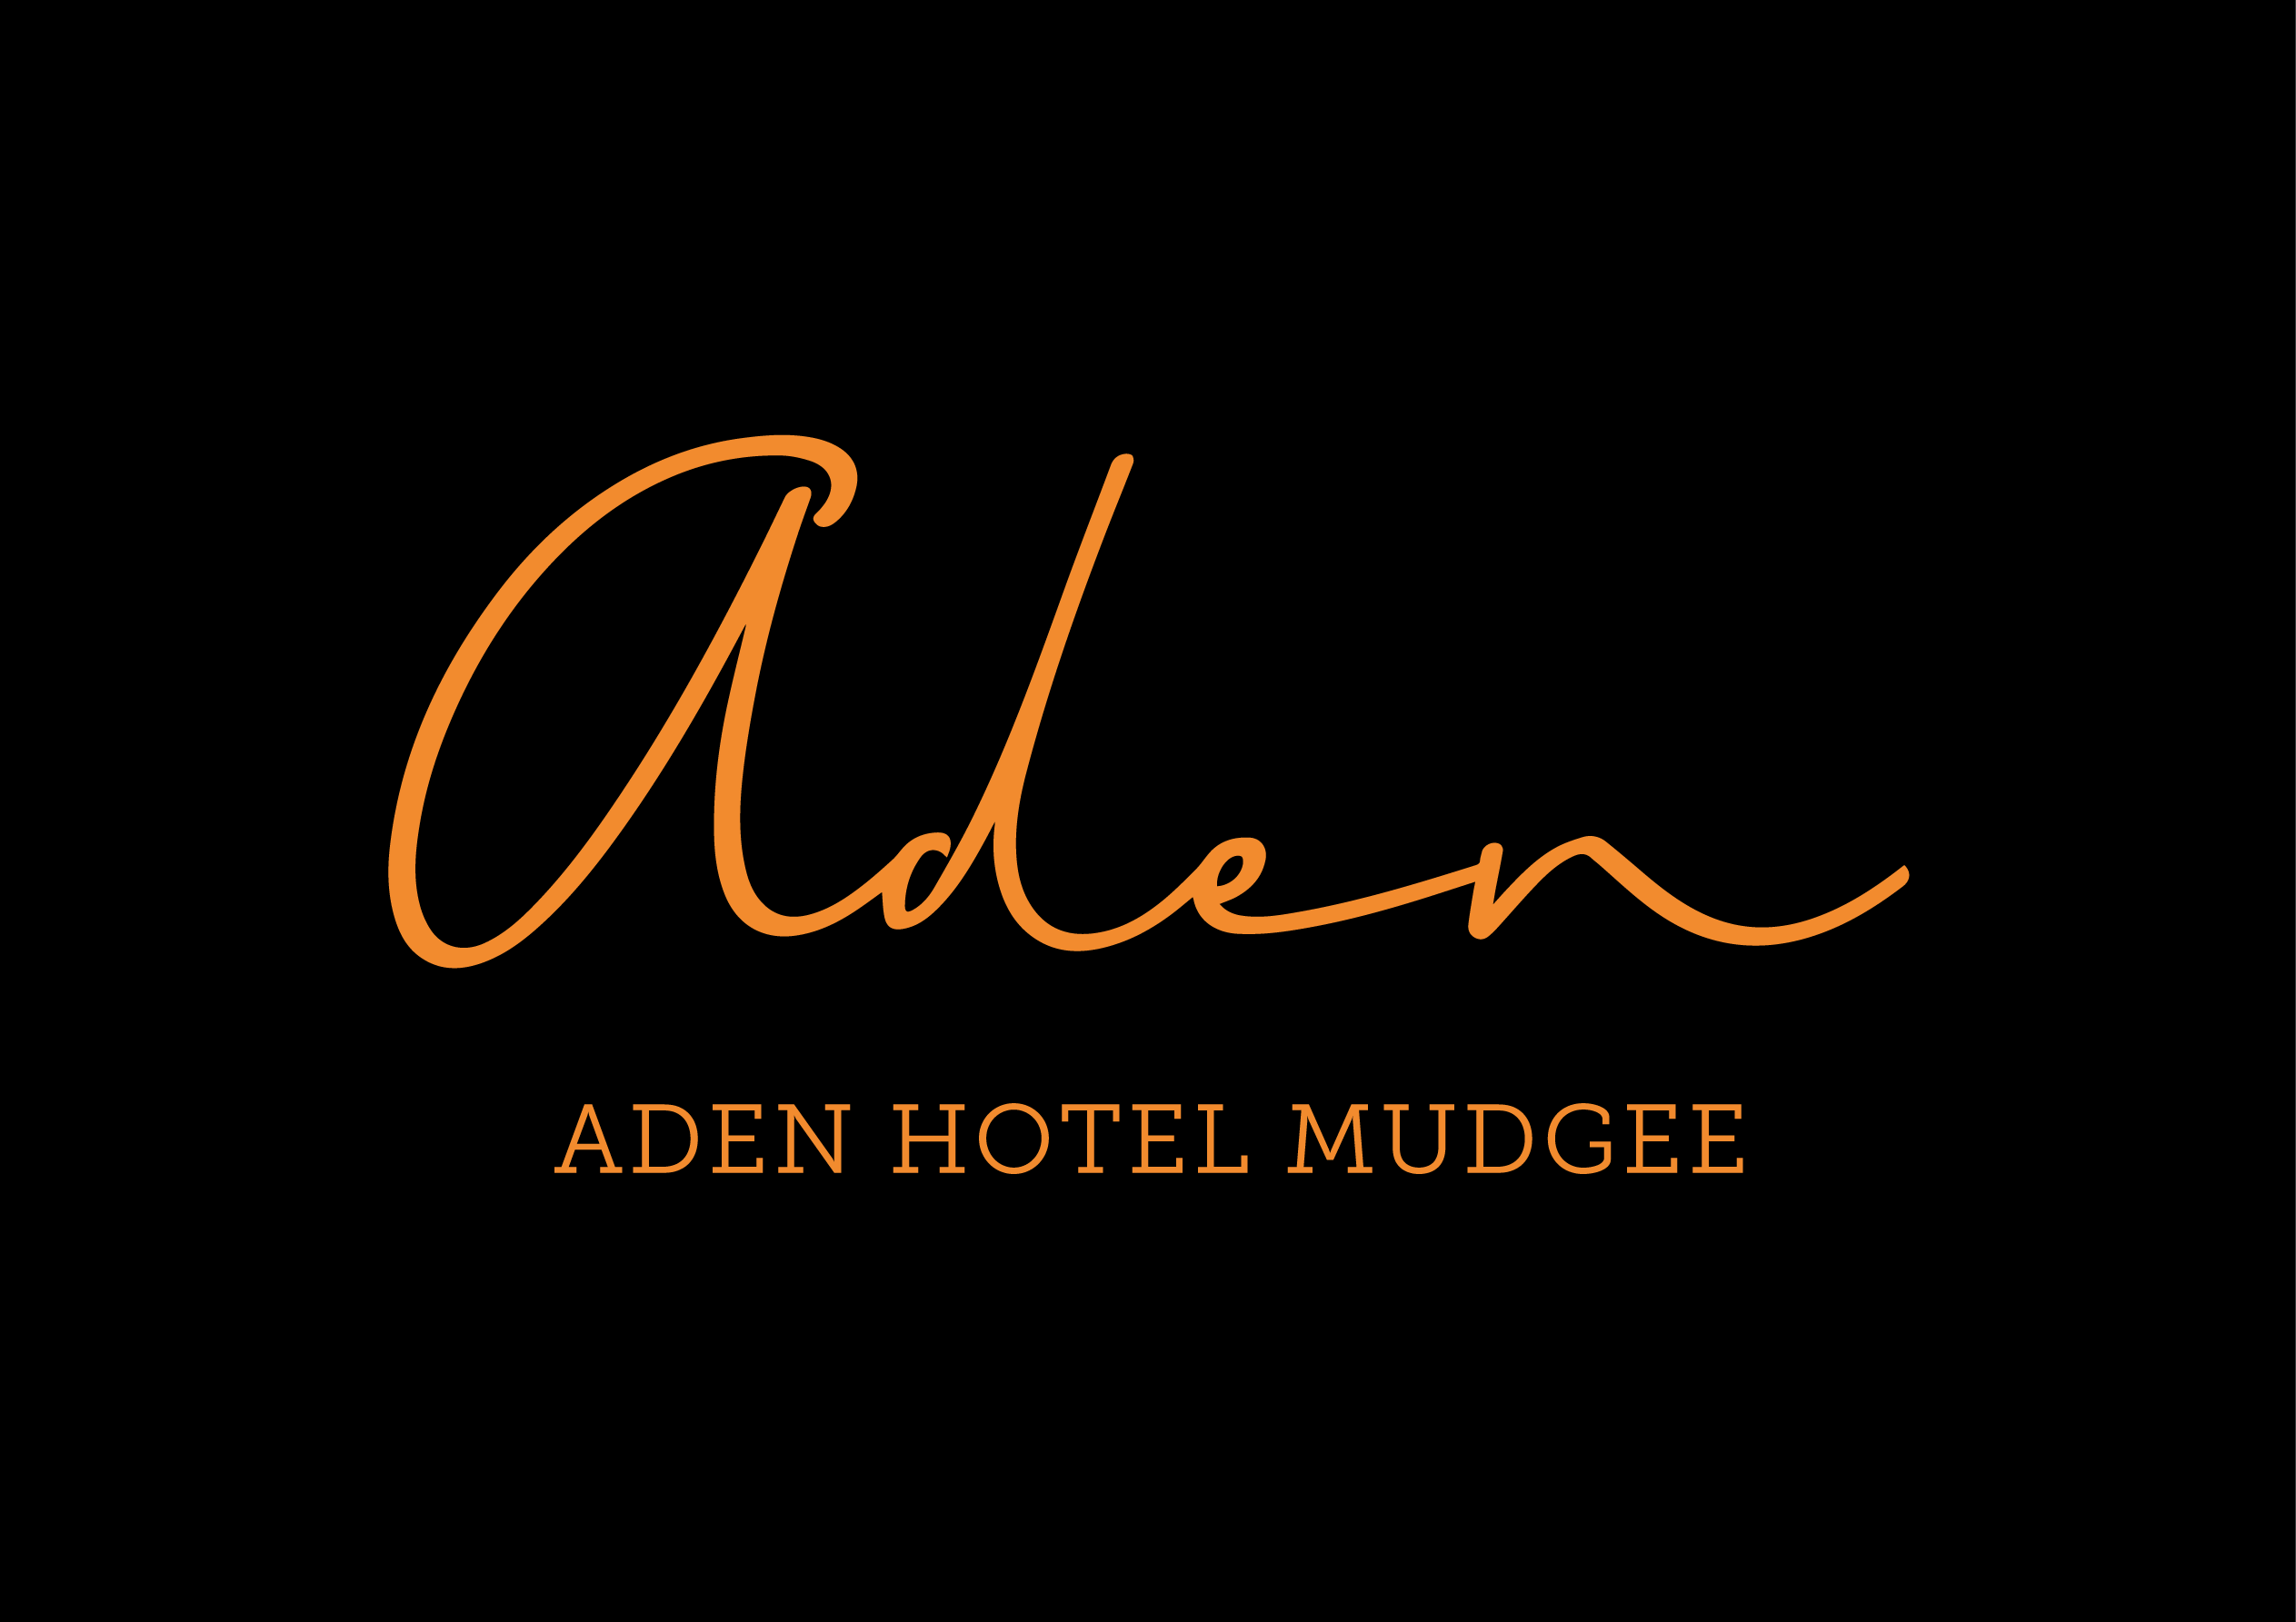 Comfort Inn Aden Hotel Mudgee - WA Accommodation